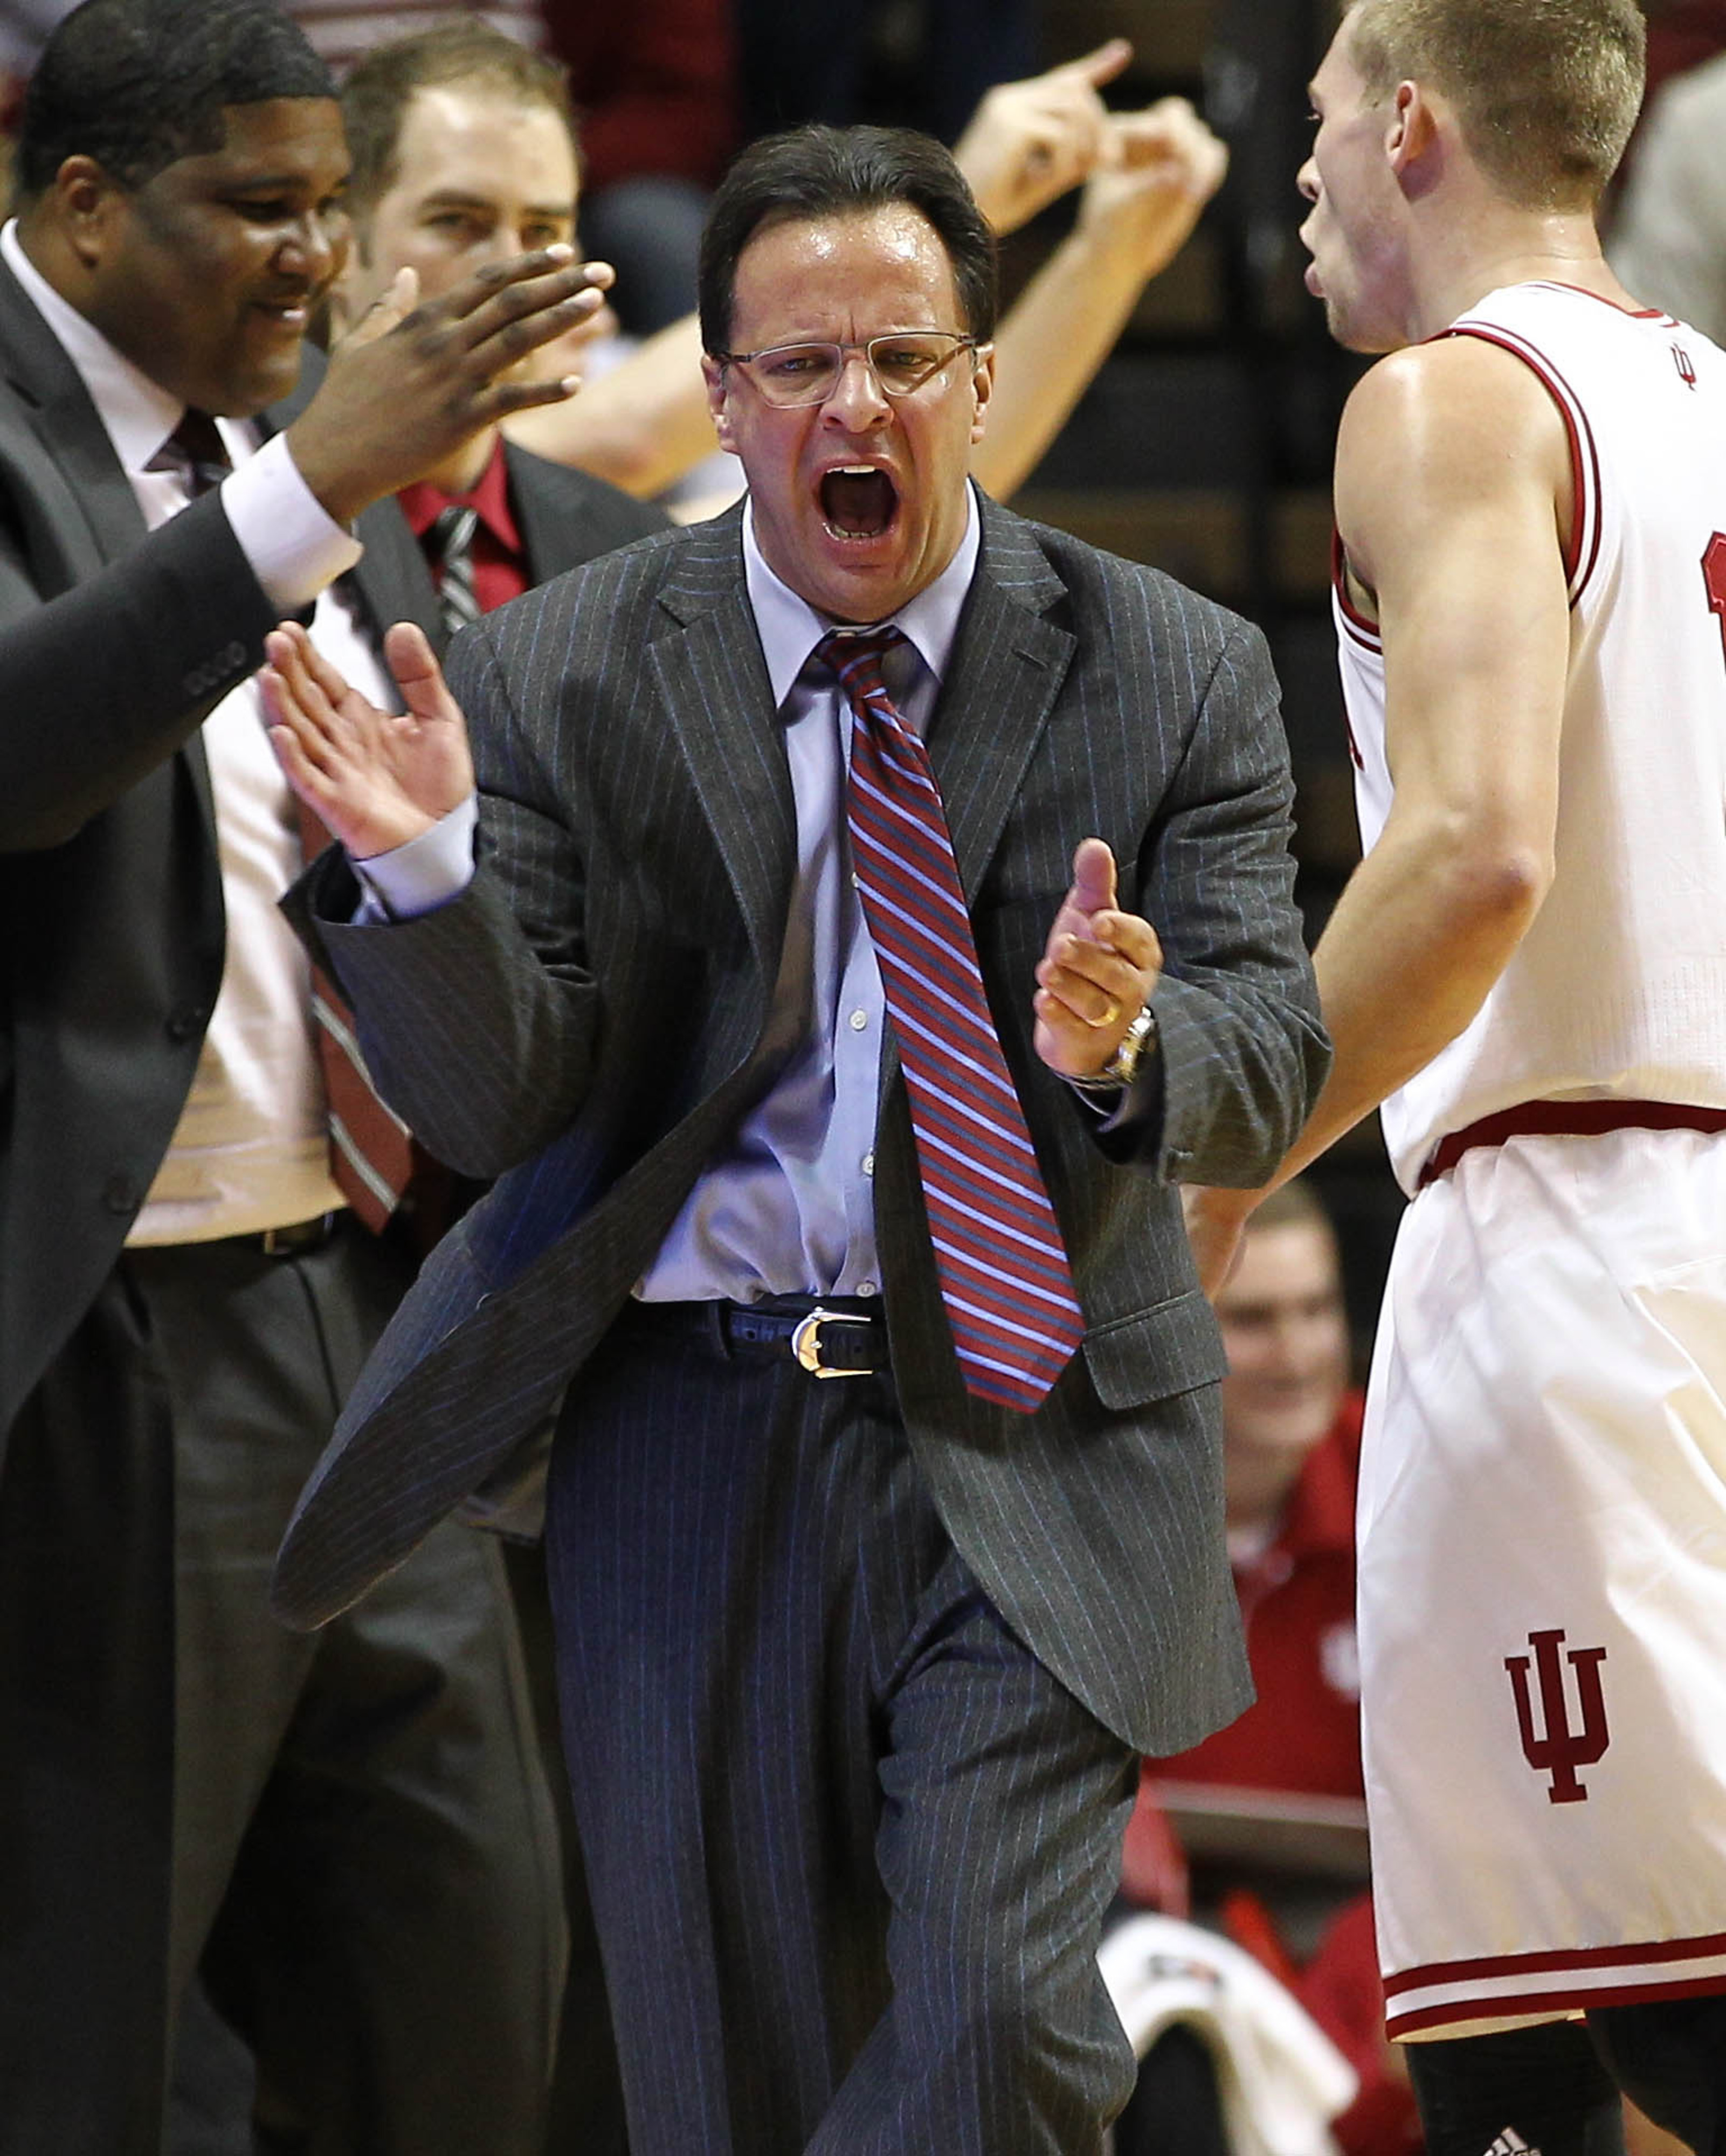 Indiana doesn't have a mascot, so here's Tom Crean and friends.